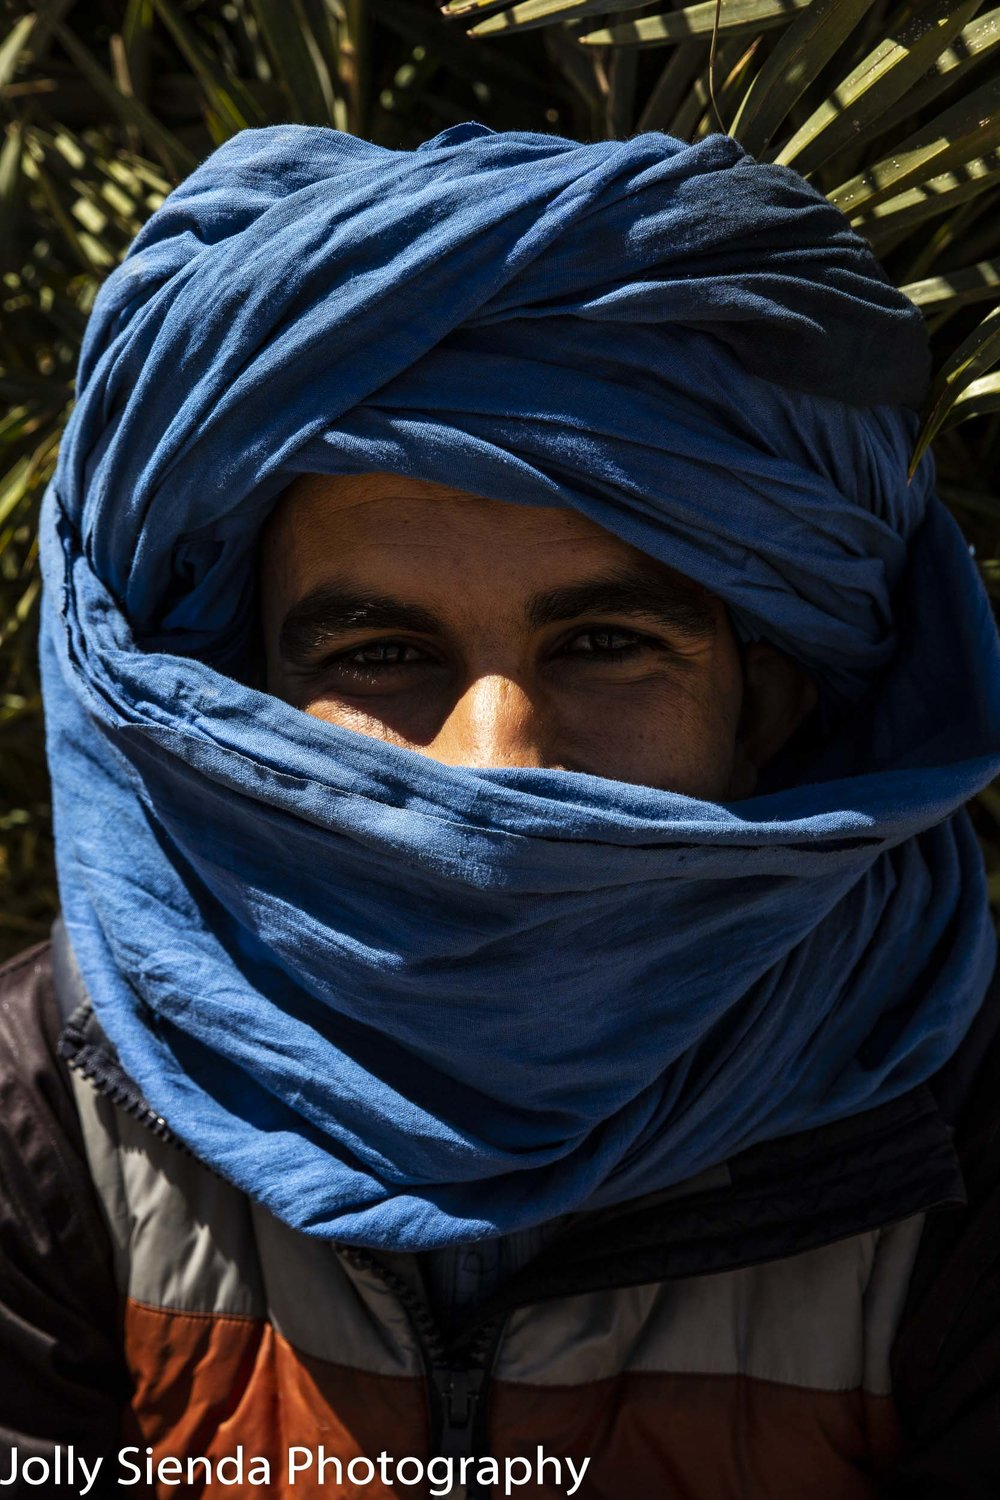 Man wears a blue turban and smiling eyes